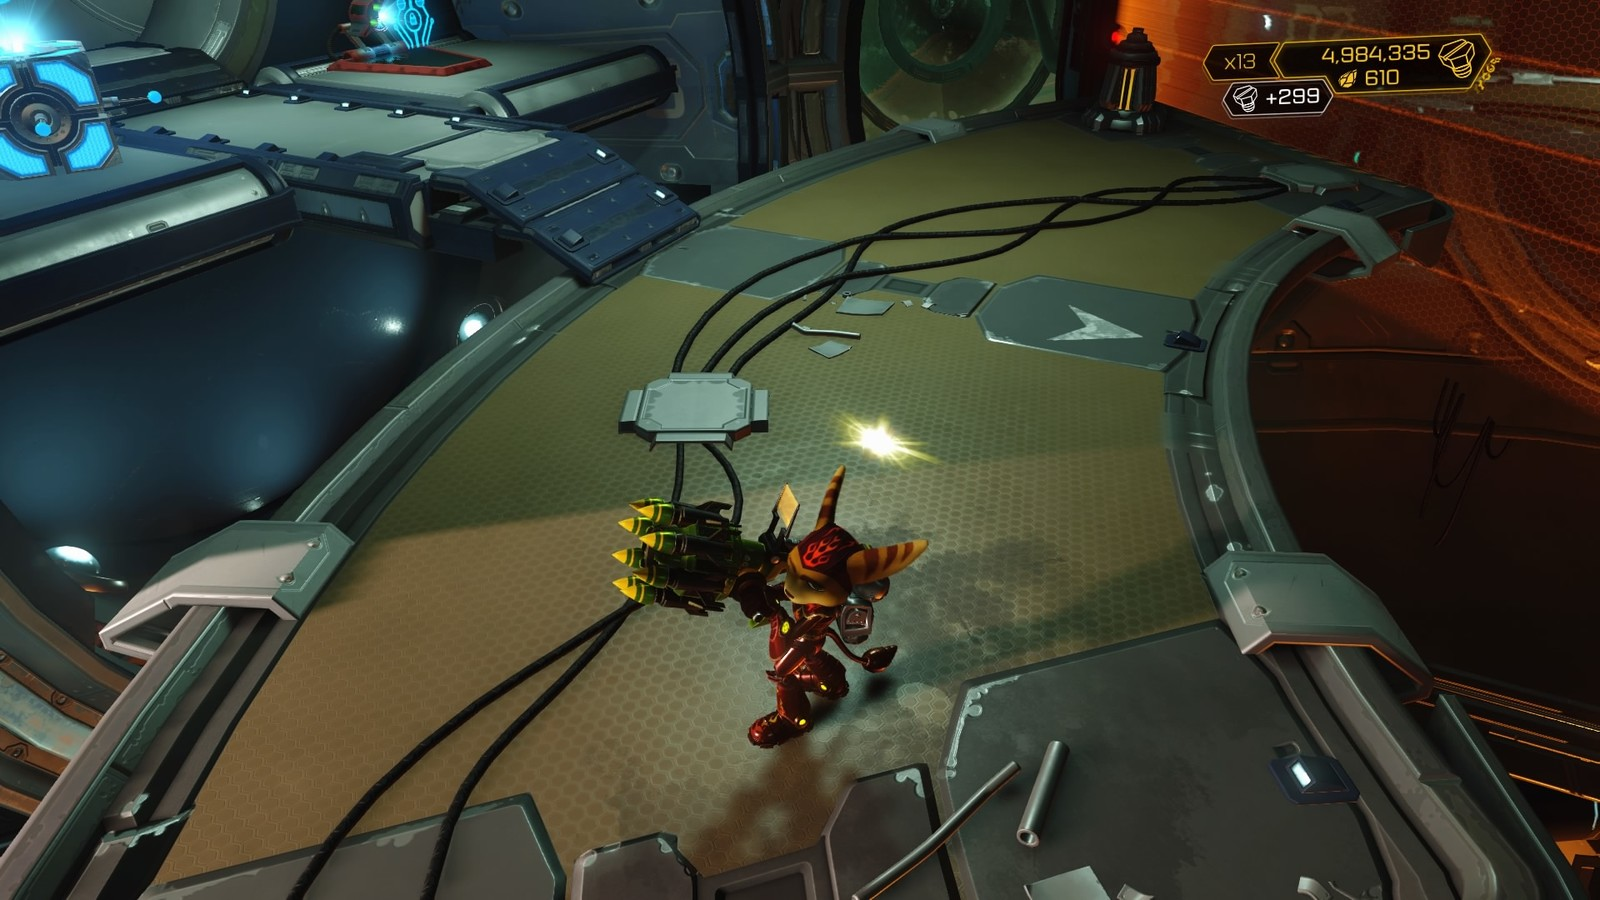 Reference image used.  Copyright for Ratchet and Clank belongs to Insomniac Games.